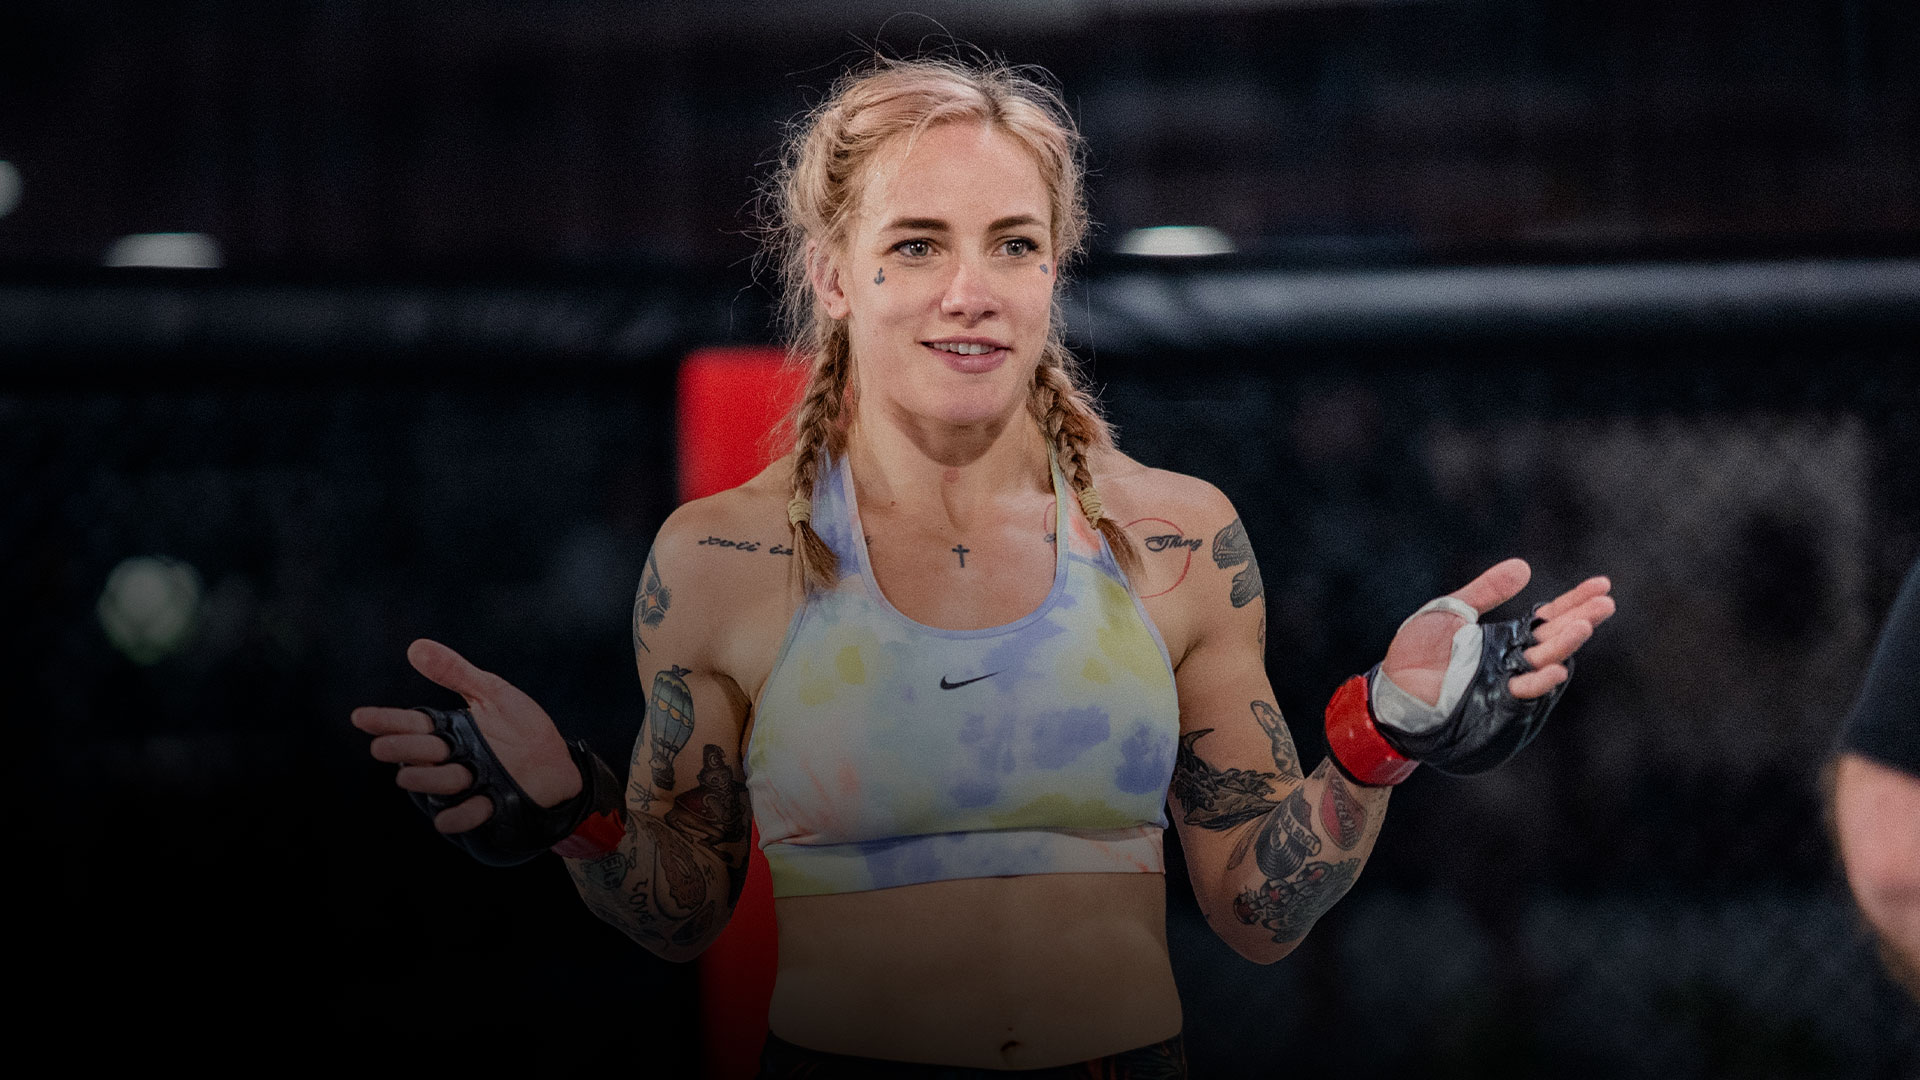 Jessica-Rose Clark trains at the UFC Performance Institute in Las Vegas, Nevada on October 20, 2021. (Photo by Zac Pacleb)